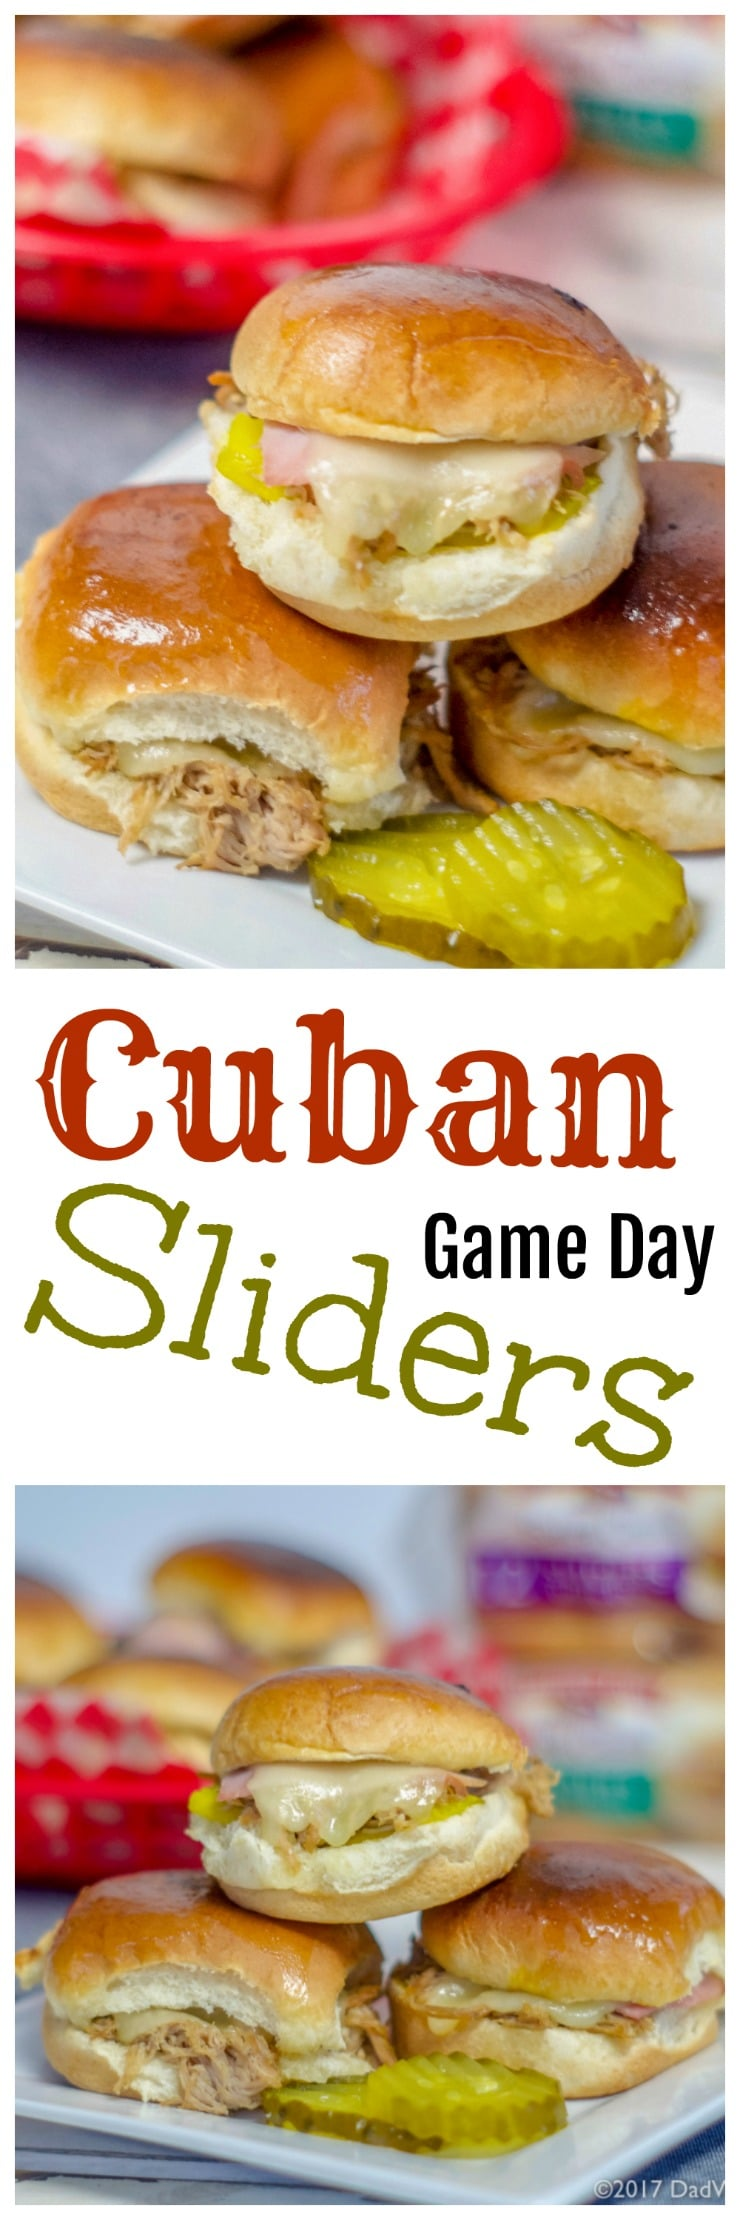 When you want a change from the ordinary hamburger slider,try these Instant Pot Cuban Sliders, sure to be a game day winner. All the flavor of a great Cuban including fall off the bone pork shoulder, ham, swiss cheese, pickles, mustard, on a @PepperidgeFarm® soft slider bun.   #Ad #LittleBunsBigWin #BakedWithCare #Gameday #Sliders #Instantpot